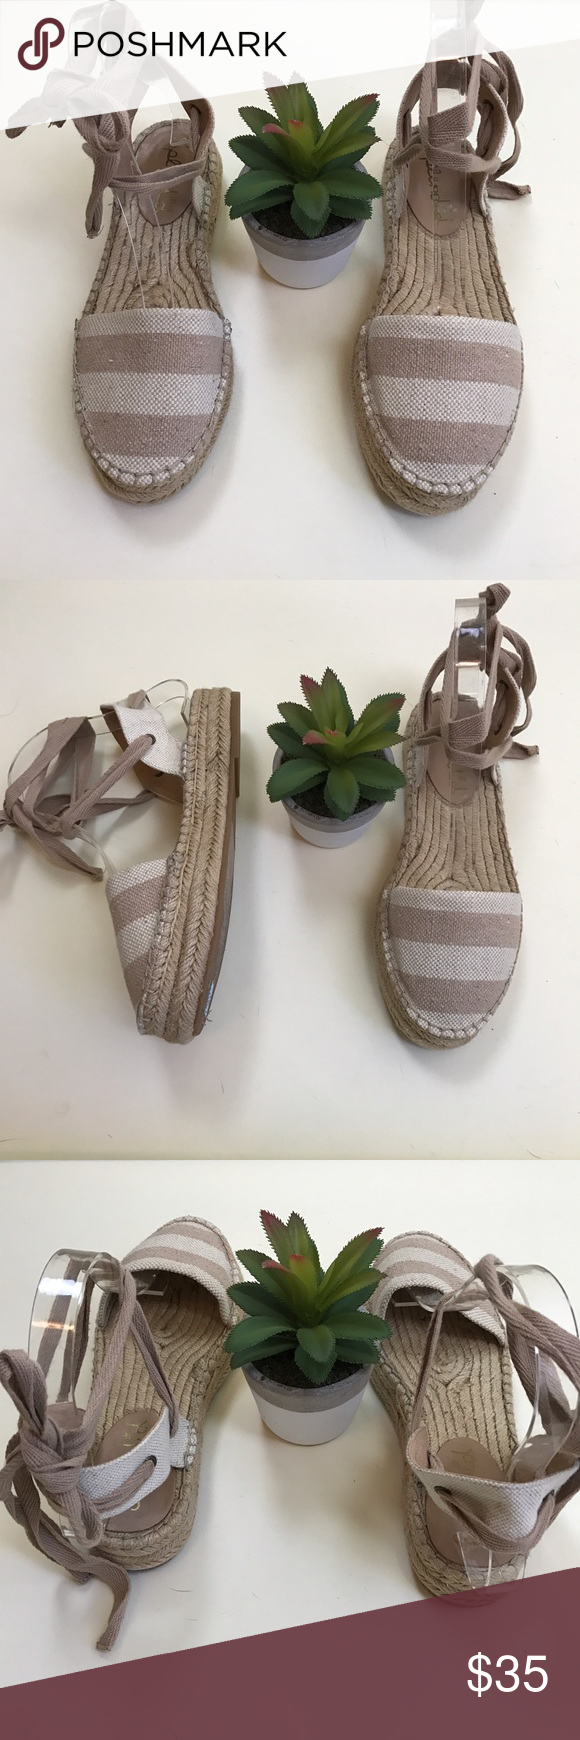 Splendid evaleigh striped canvas espadrille Sz 6 Normal wear signs. Please see photos to zoom in, Splendid Shoes Espadrilles